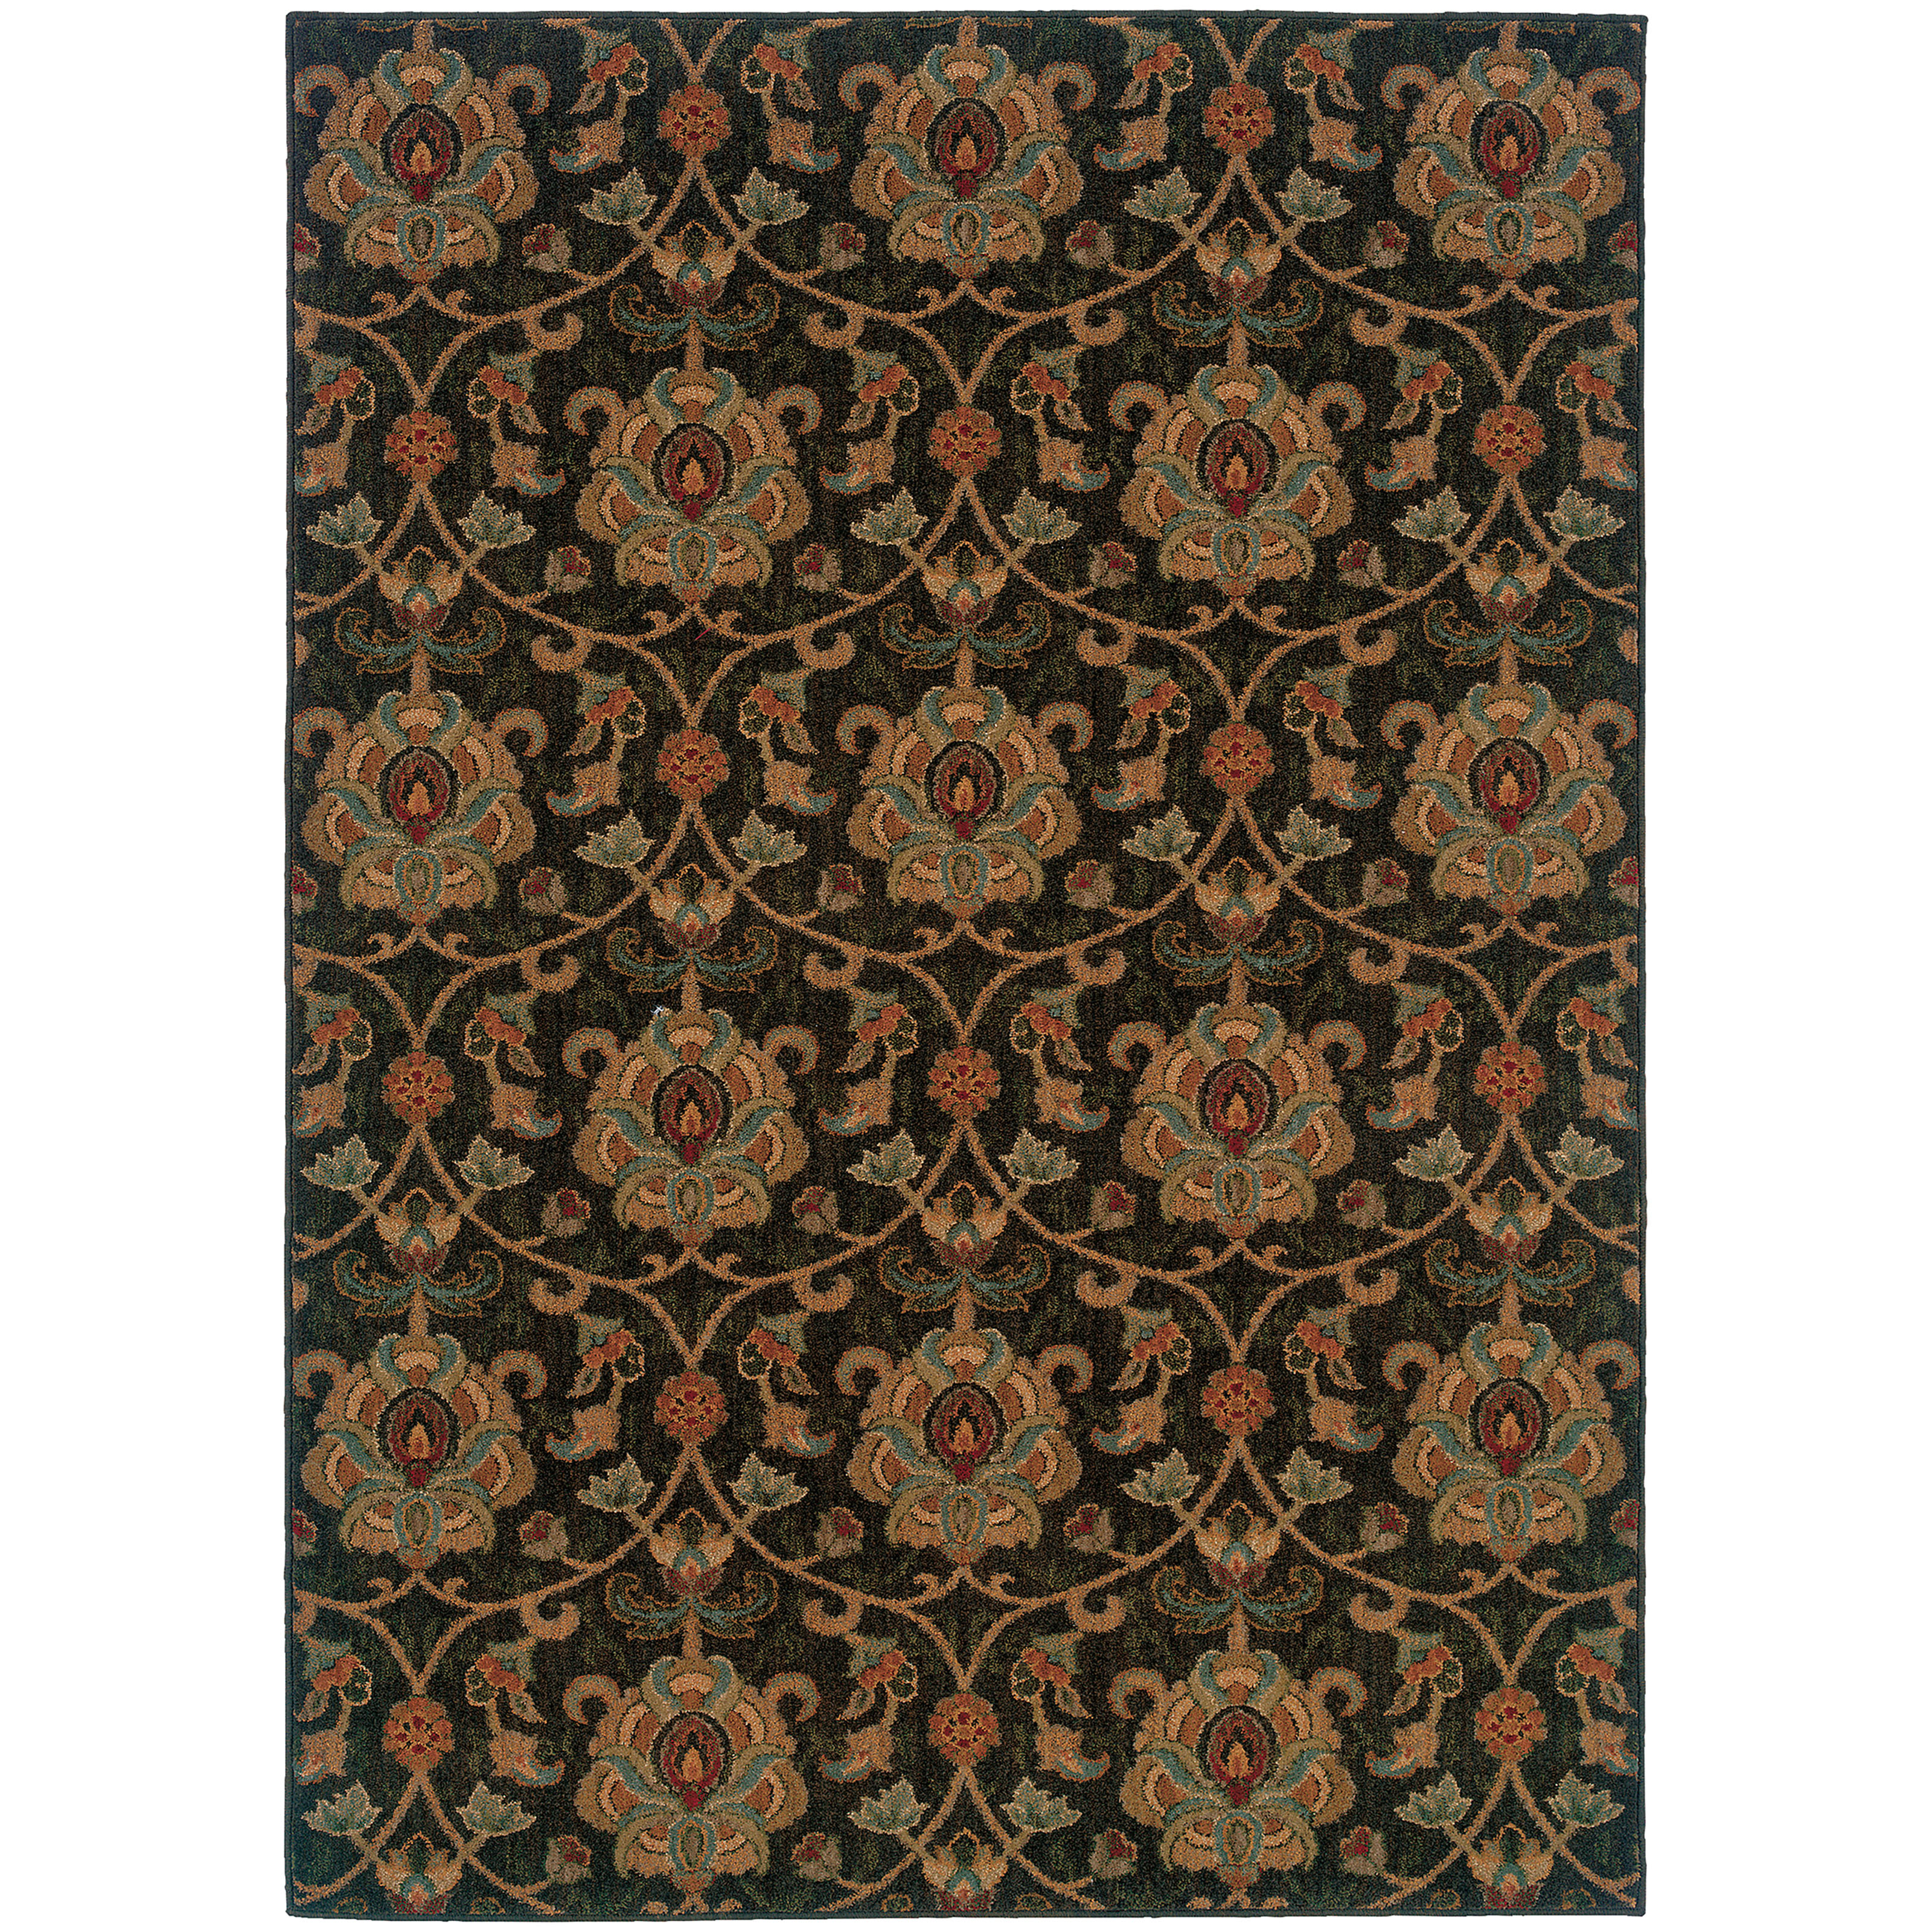 Sphinx Oriental Weavers Infinity 1724e Black Gold Area Rug Fovama